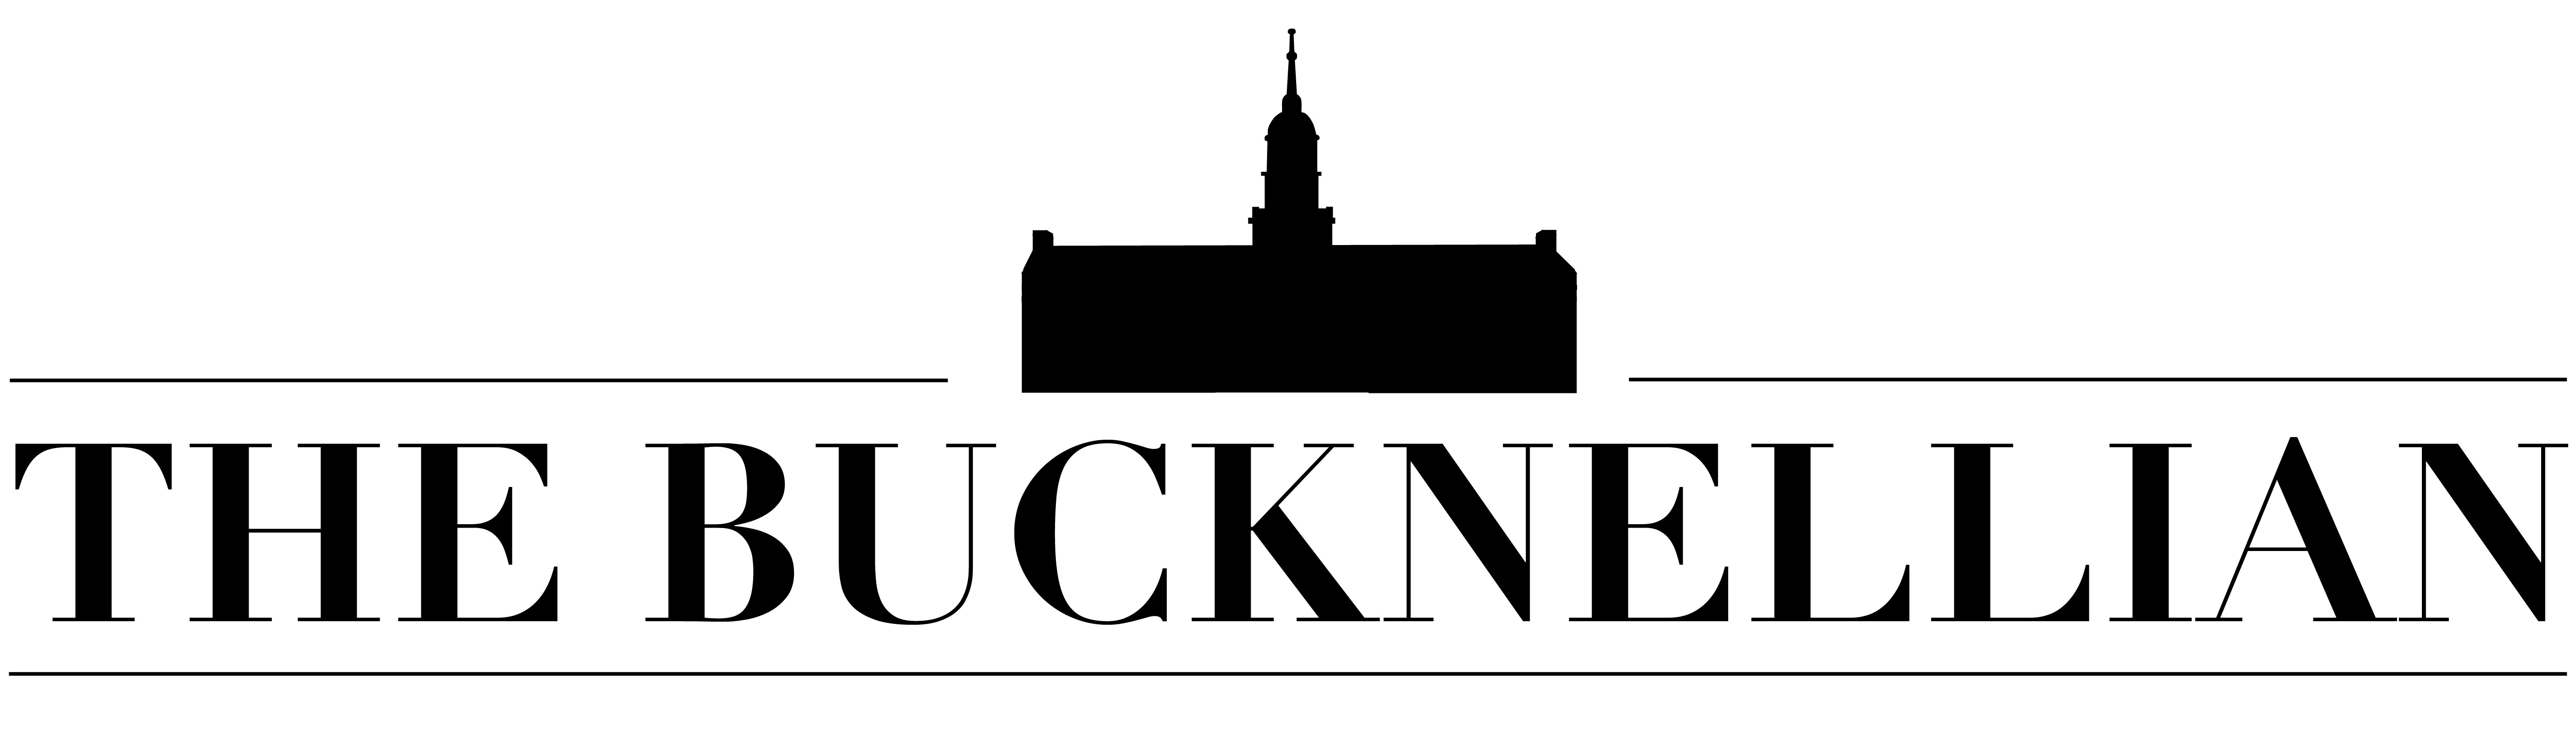 The weekly student newspaper of Bucknell University